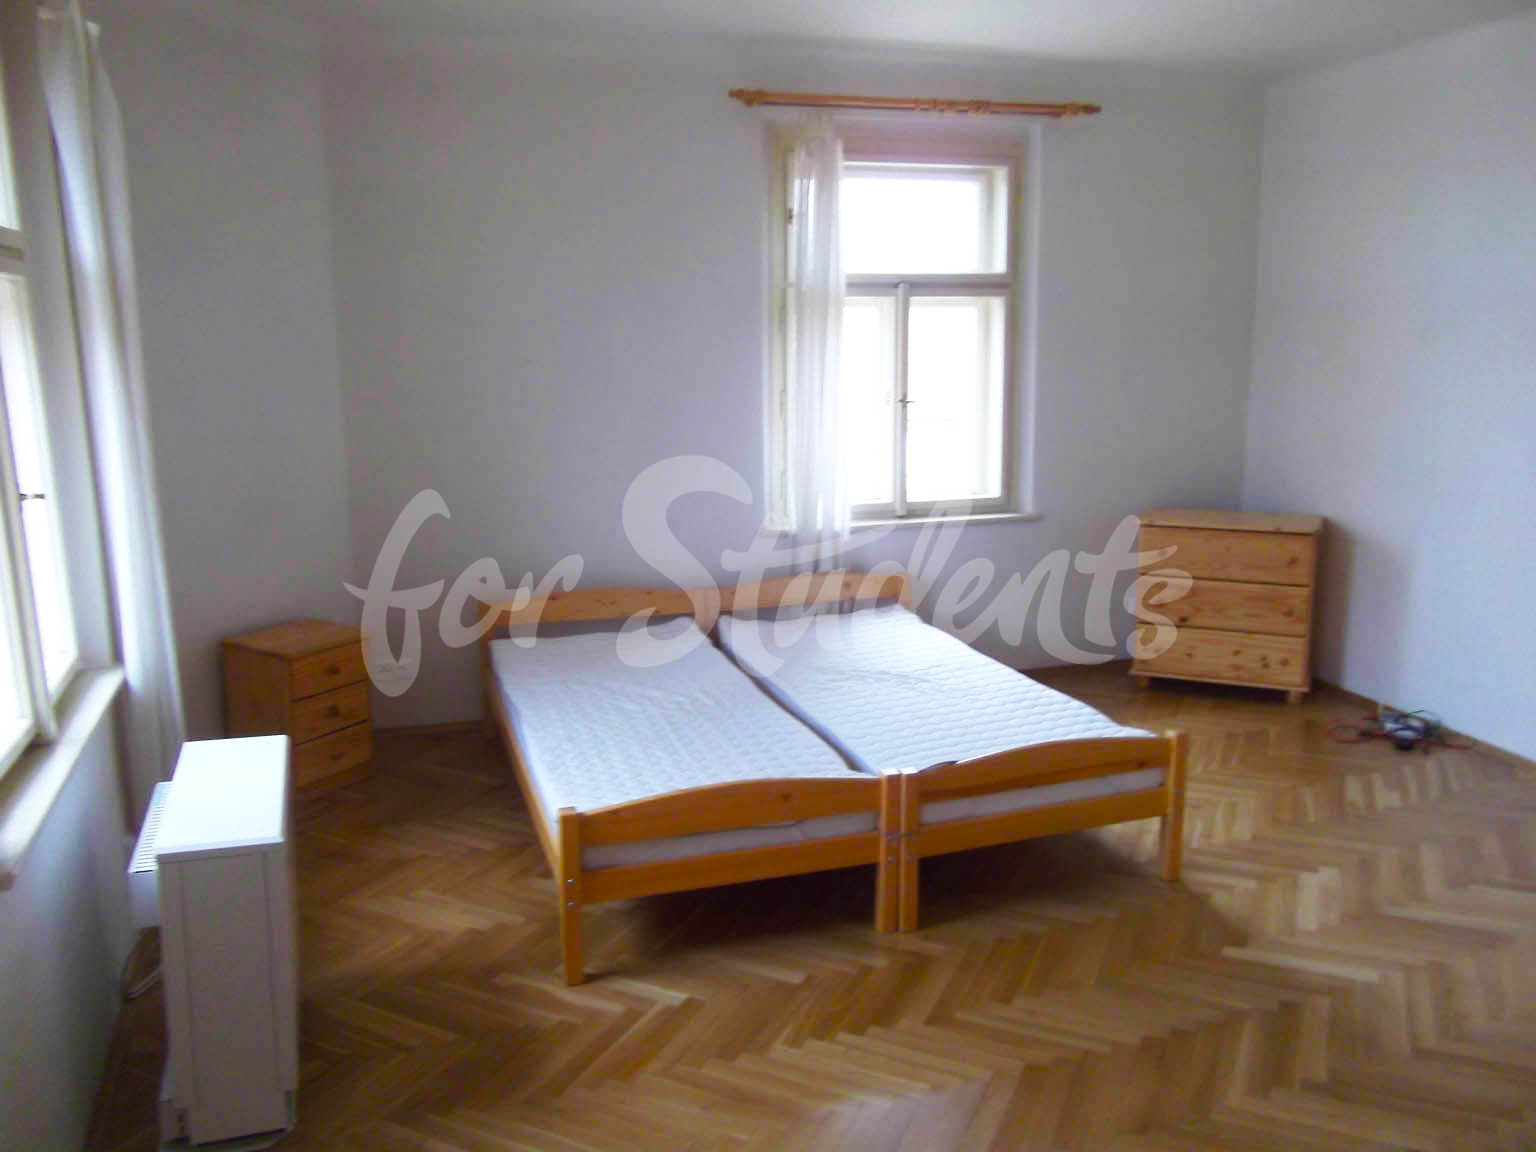 One bedroom flat in Prague 2